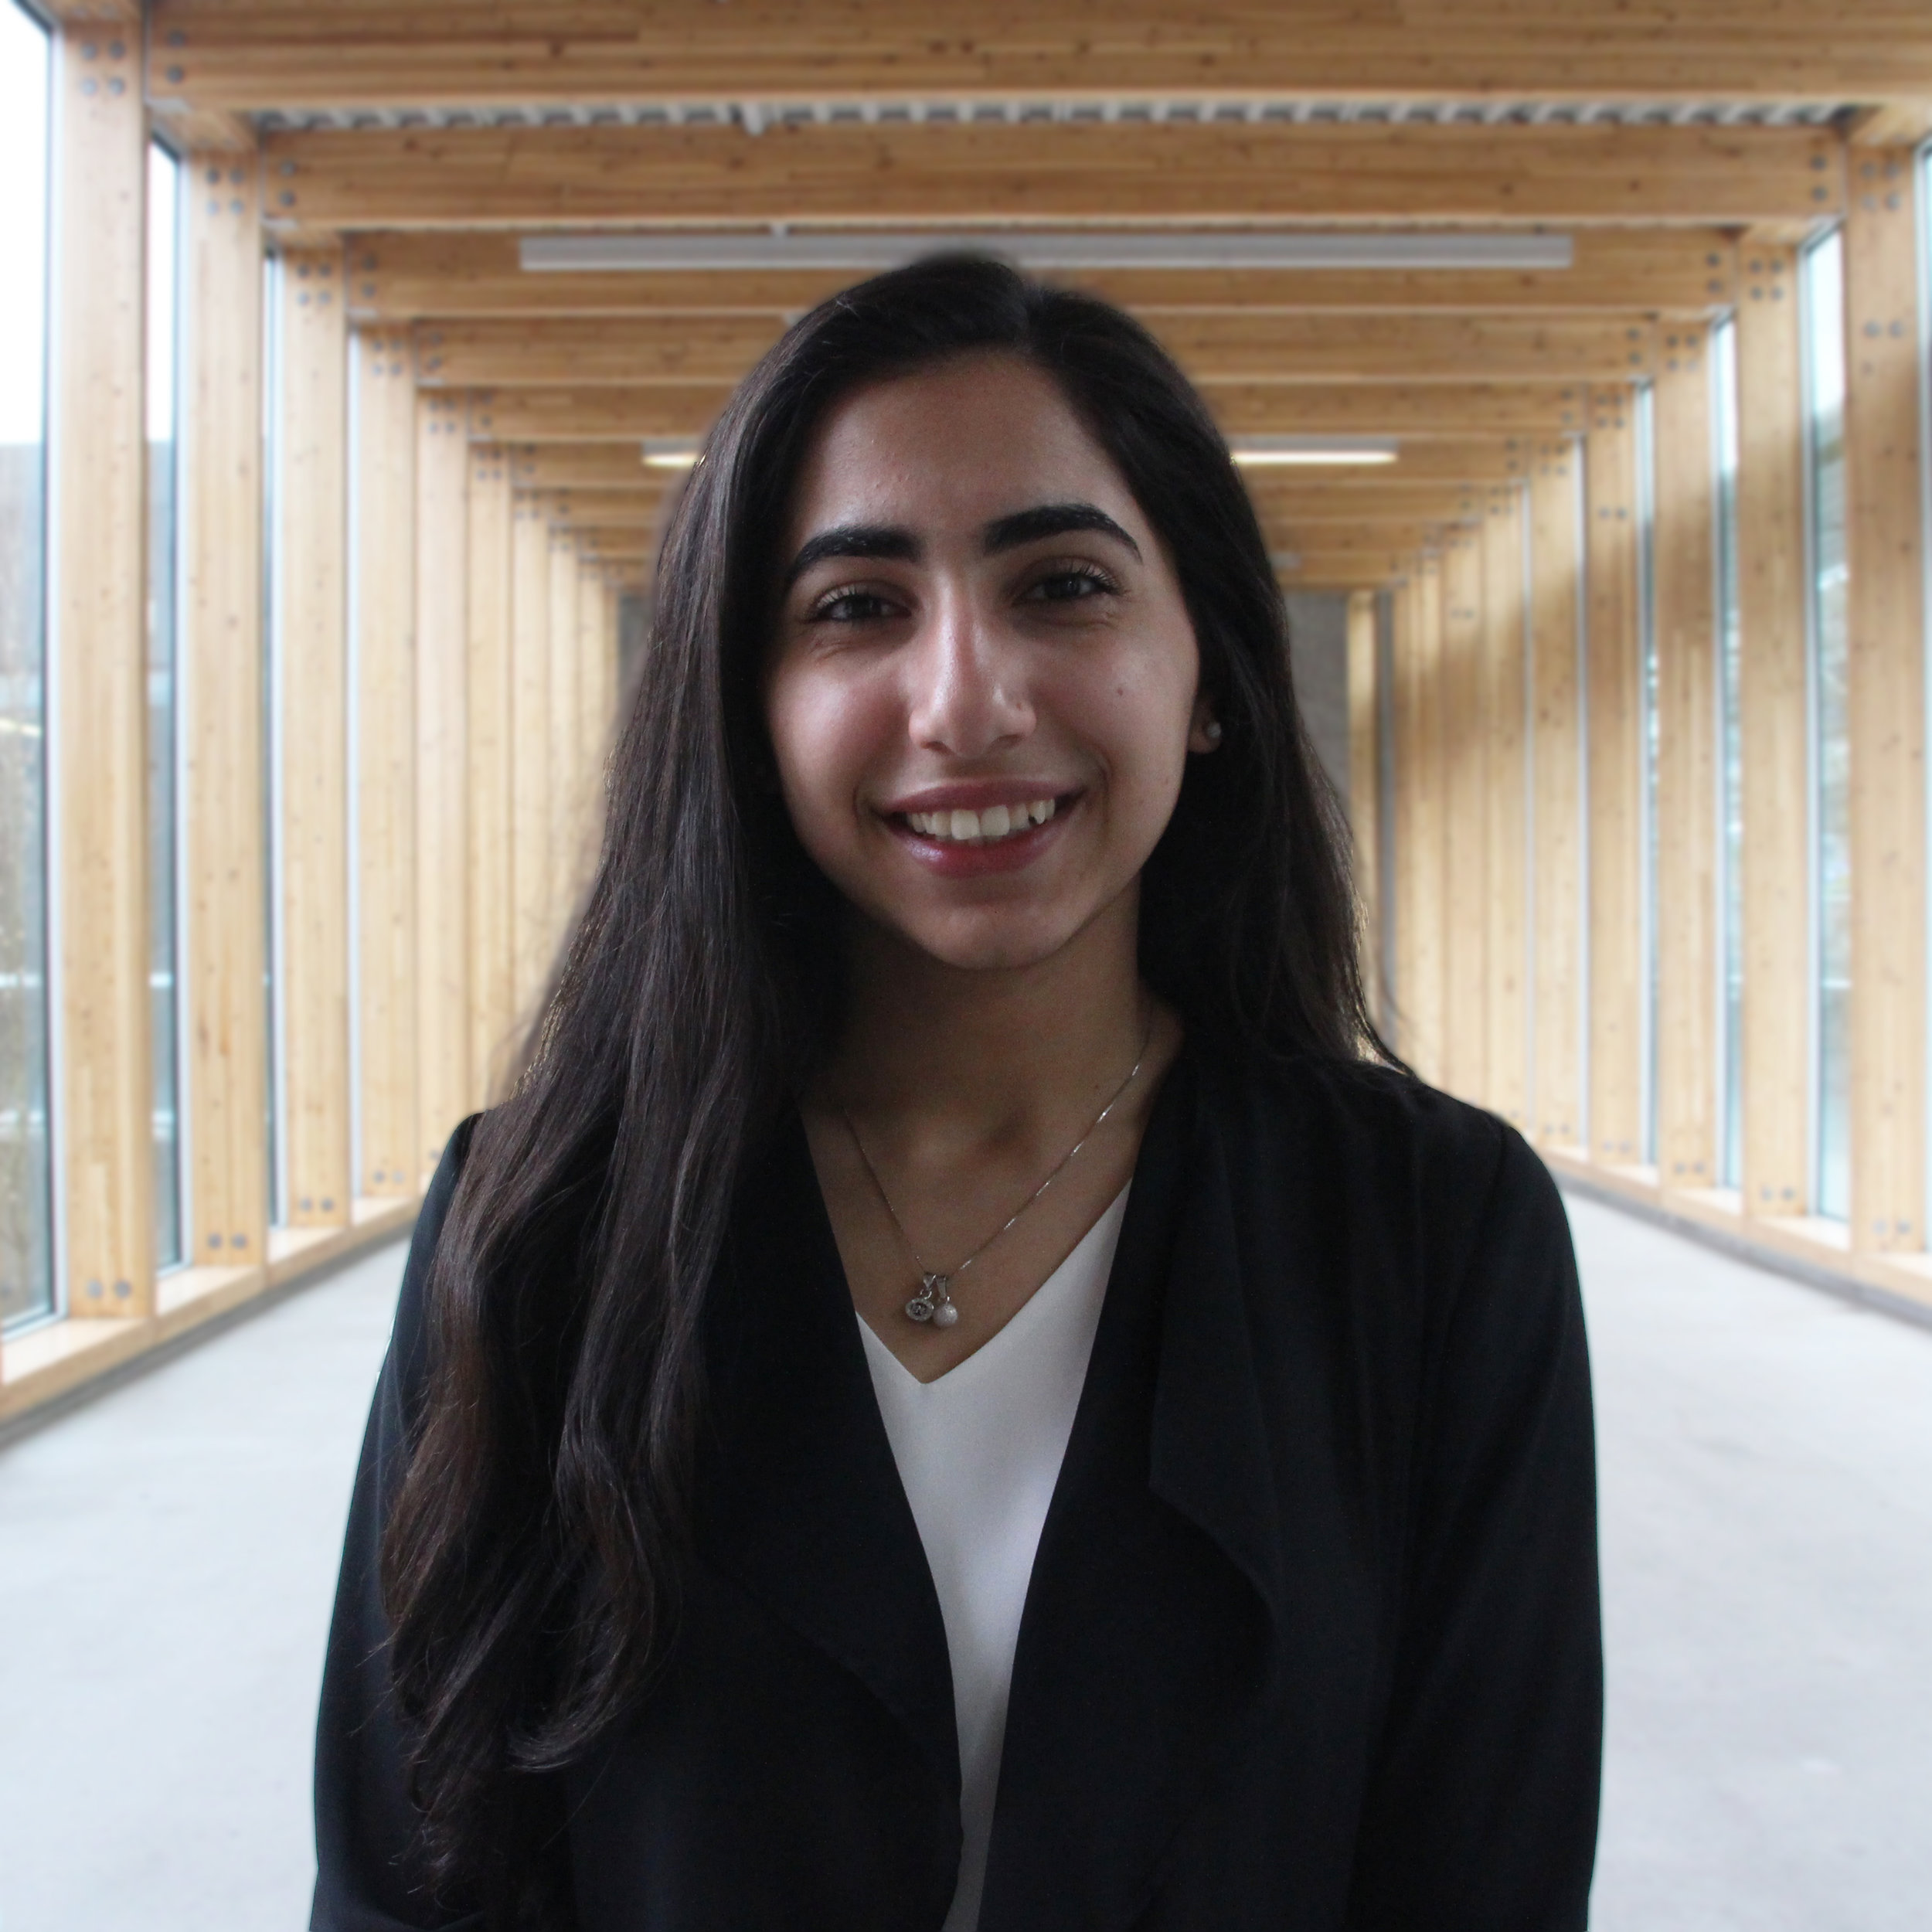 Maryam Labani - Volunteer Coordinator